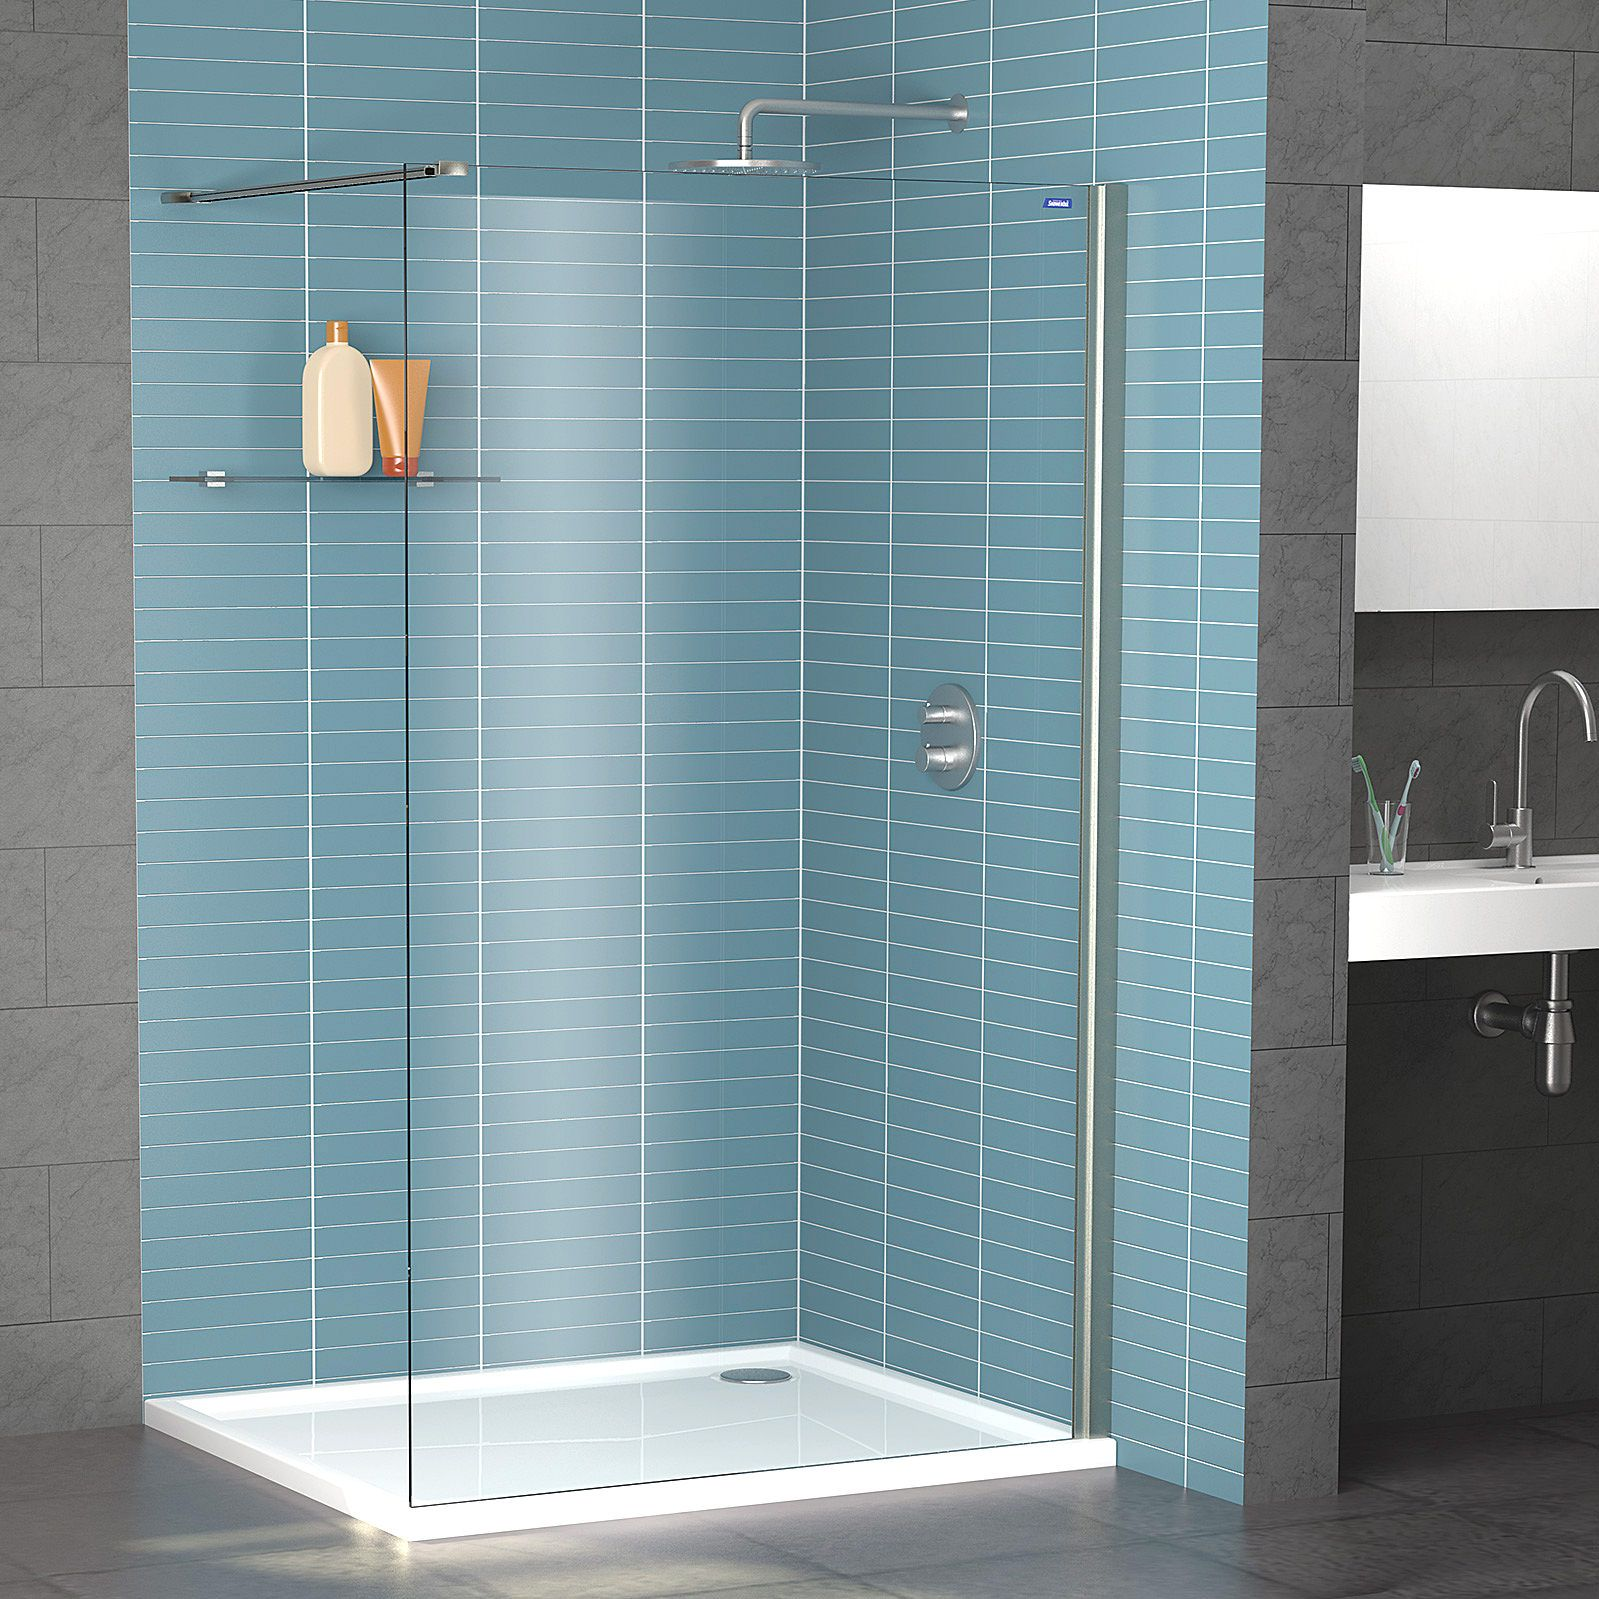 Lot 21 - Shower Lux - Legacy Wet Room Panel - 1900x900 - Platnium Silver - New and Boxed.